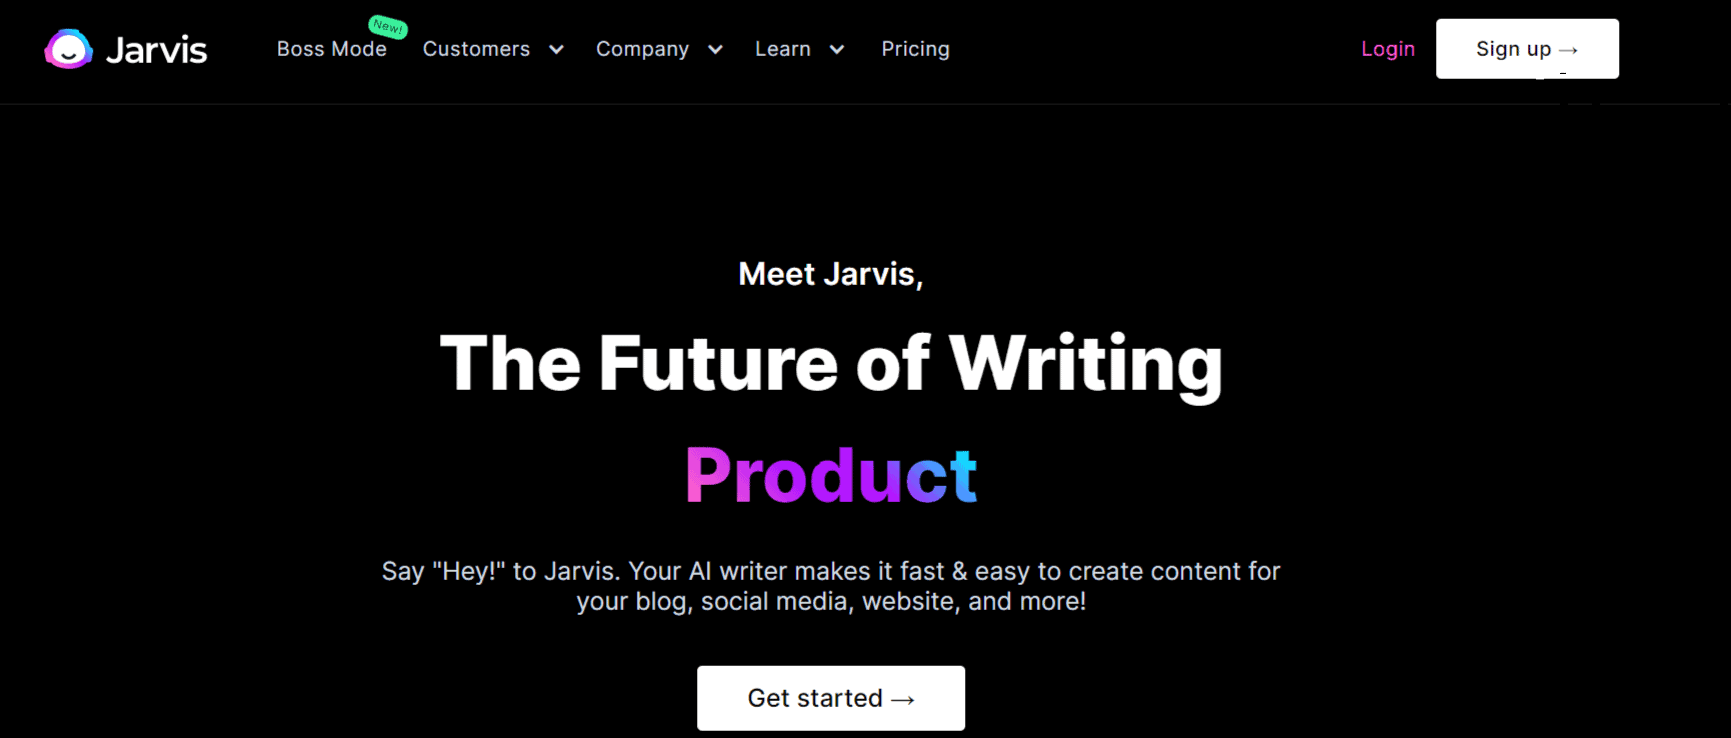 Jarvis Overview